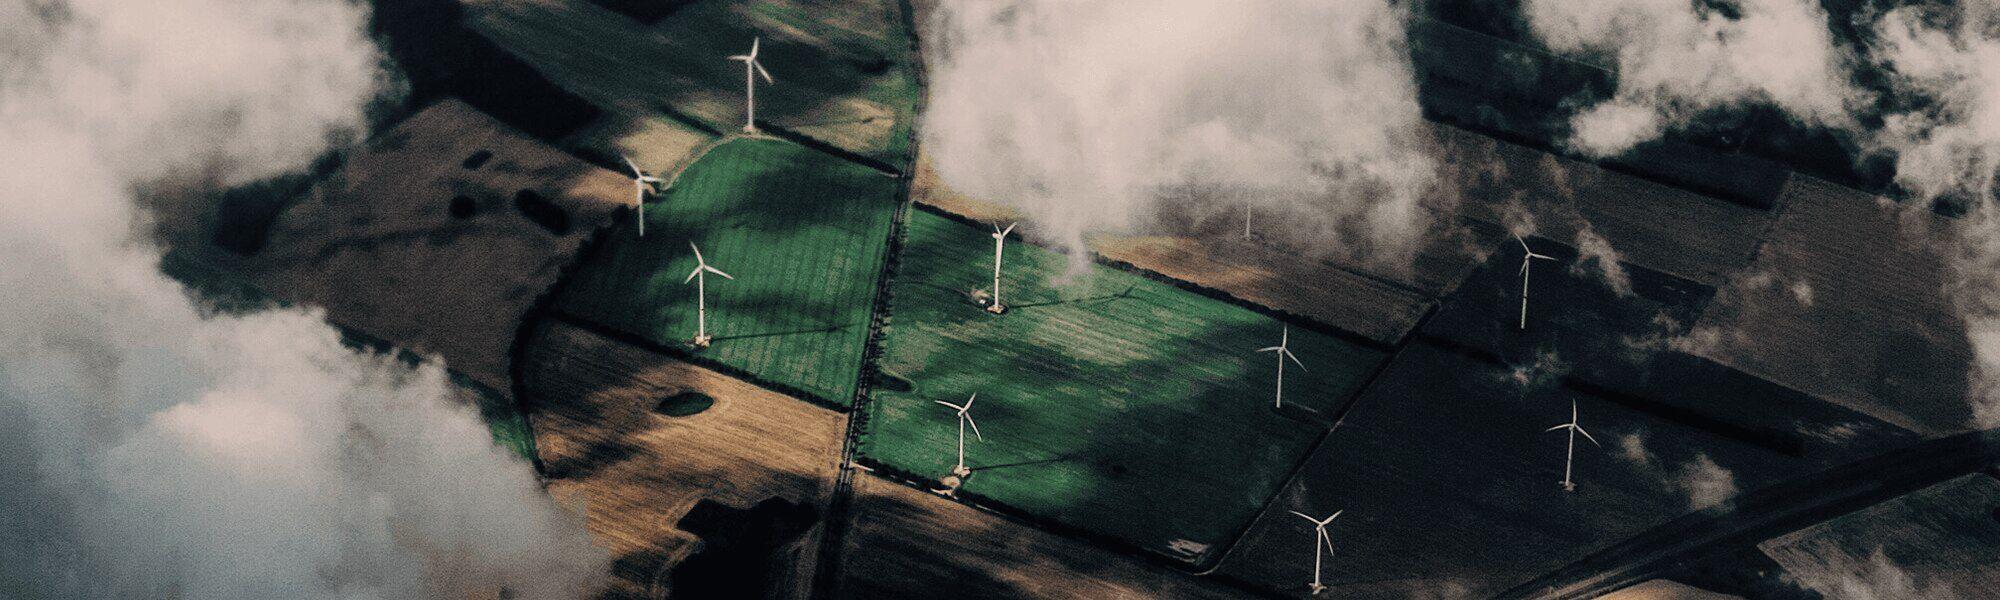 Field with wind turbine look from above.